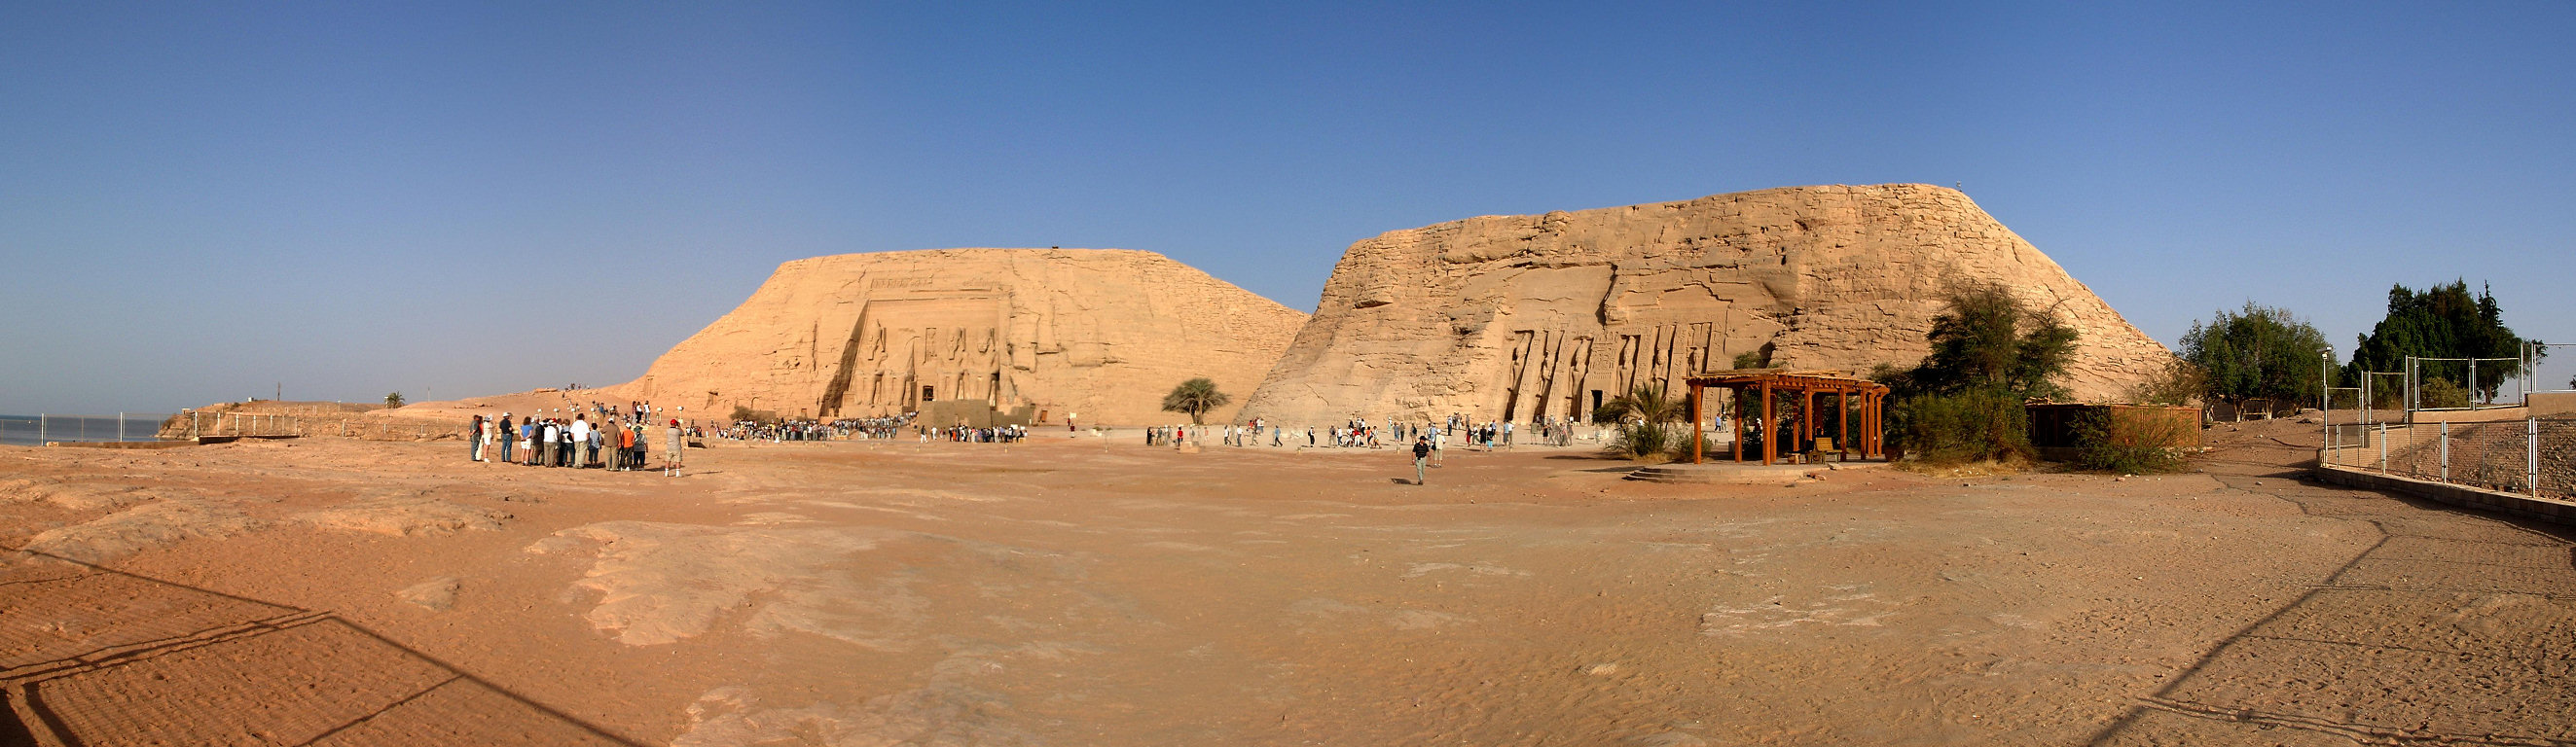 http://upload.wikimedia.org/wikipedia/commons/5/52/Panorama_Abu_Simbel.jpg